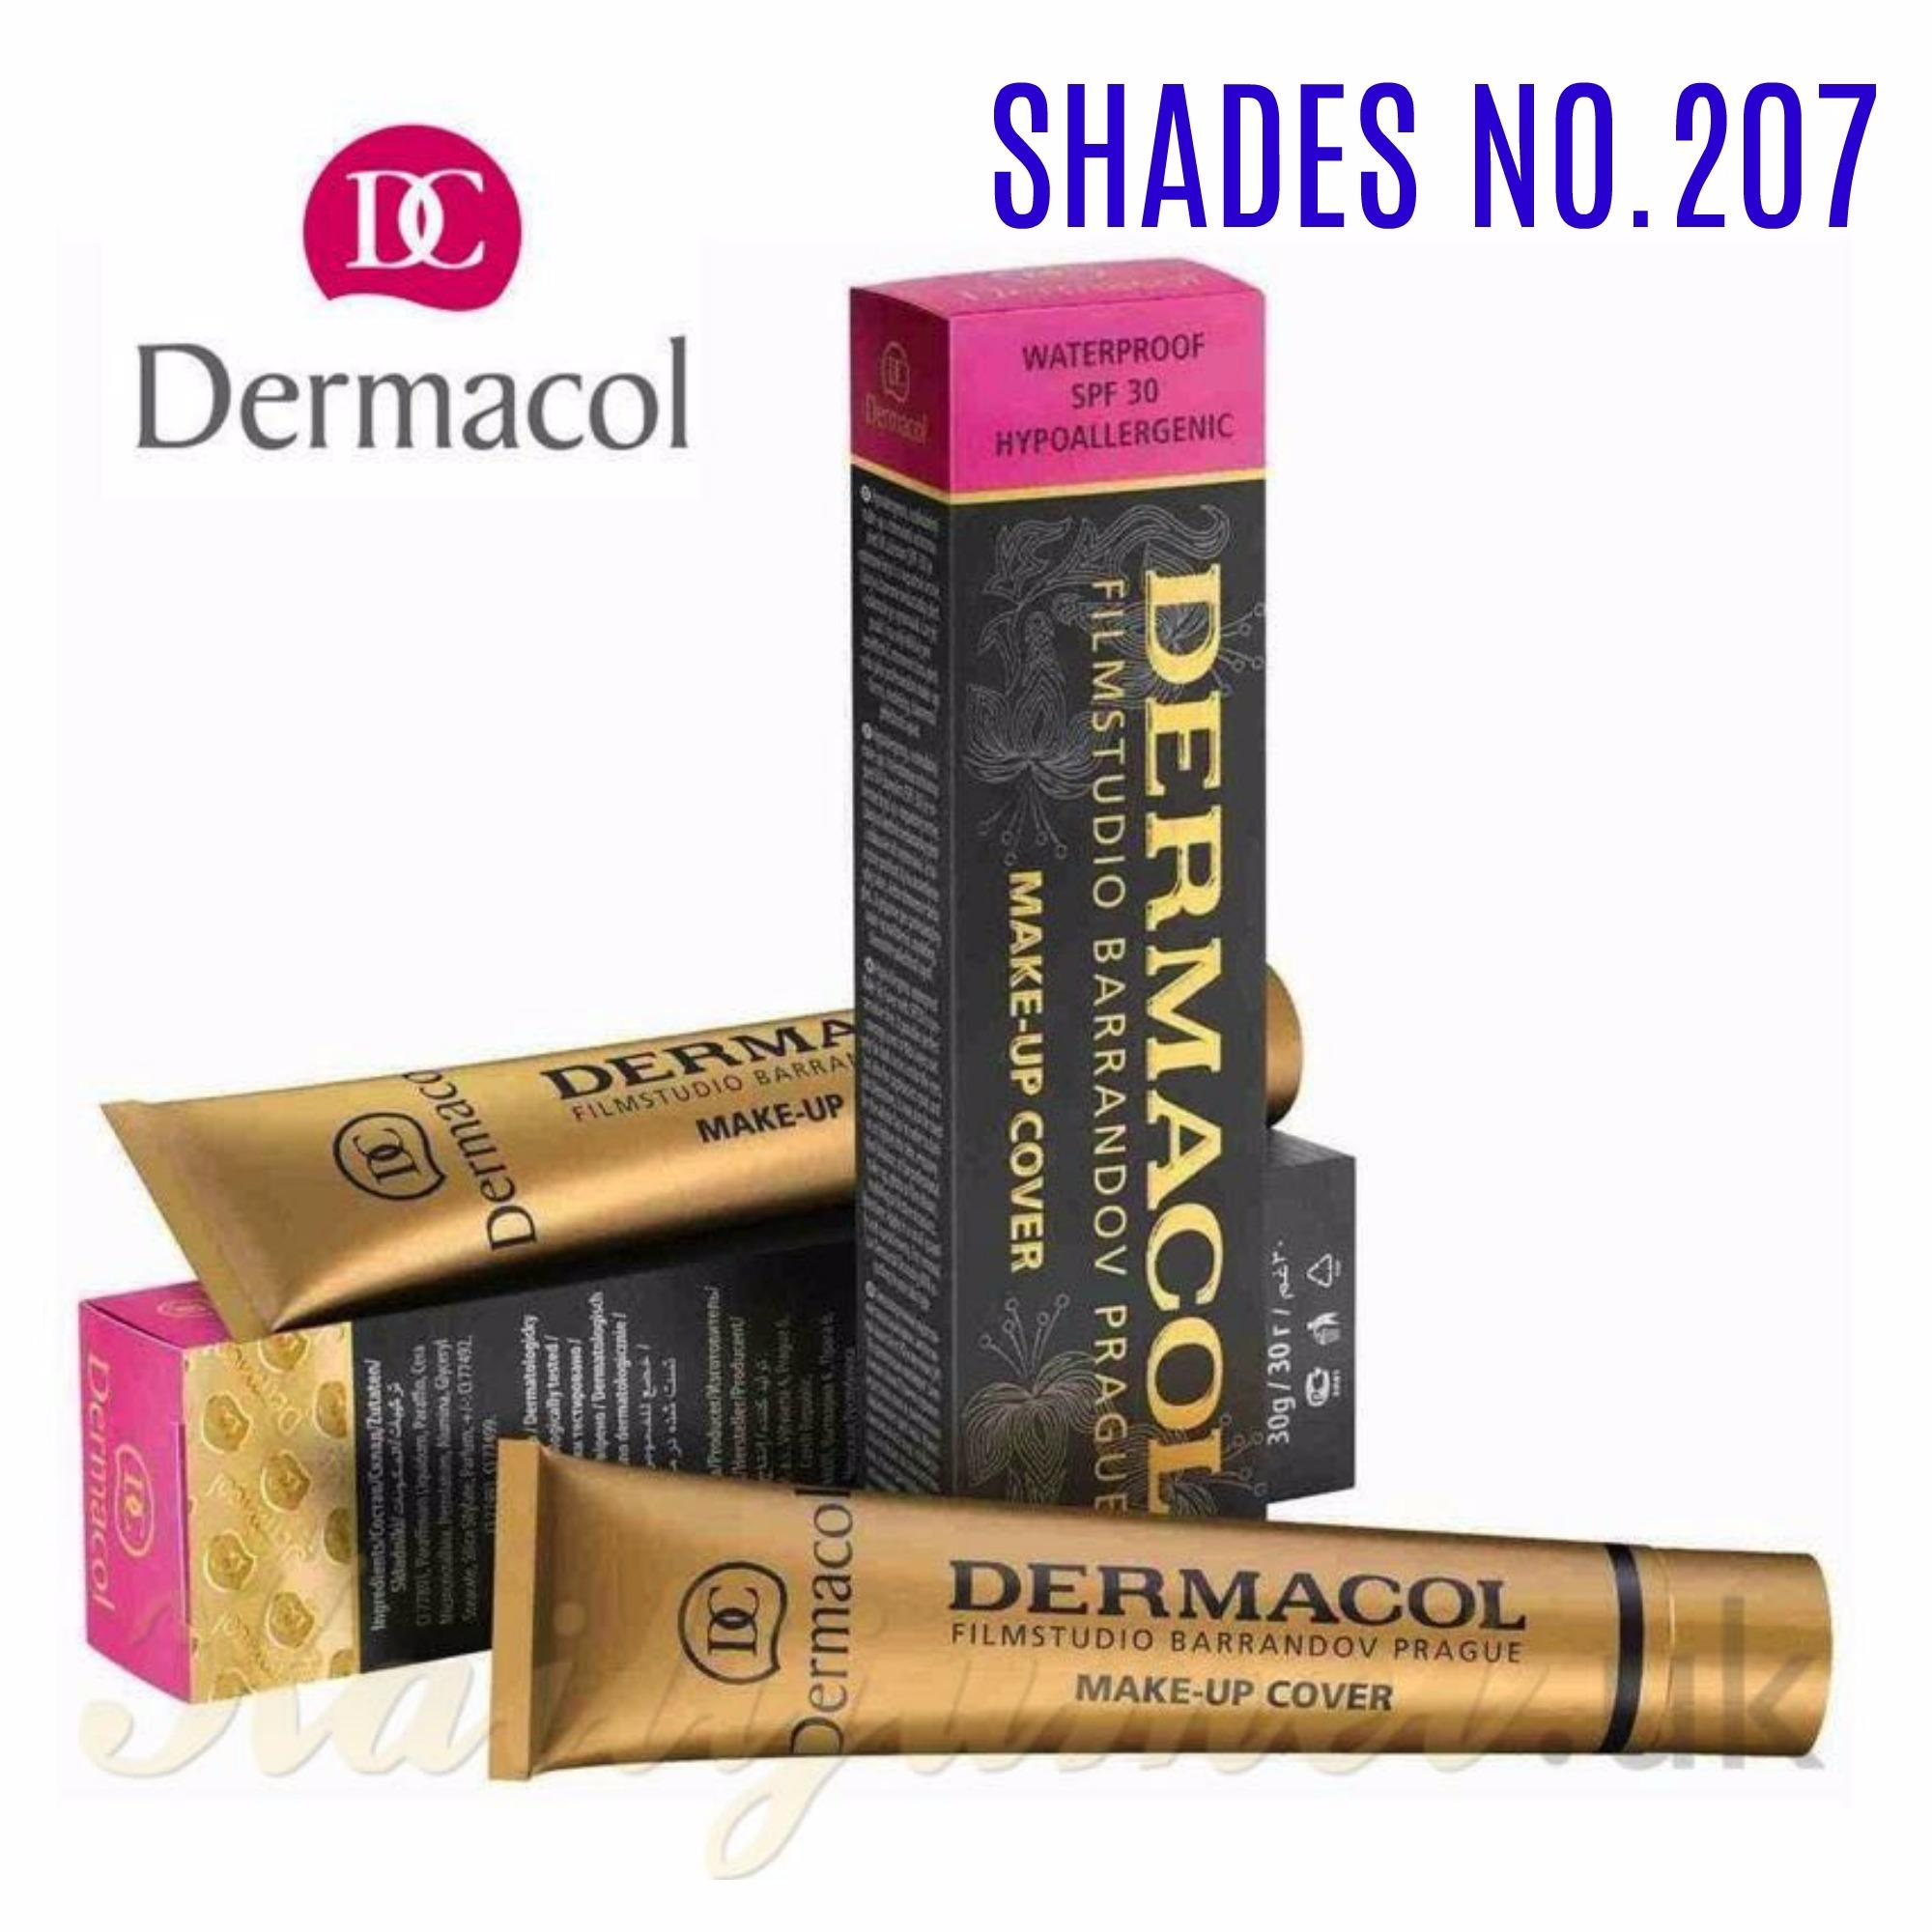 Waterproof Dermacol Make Up Cover Shades 207 Philippines